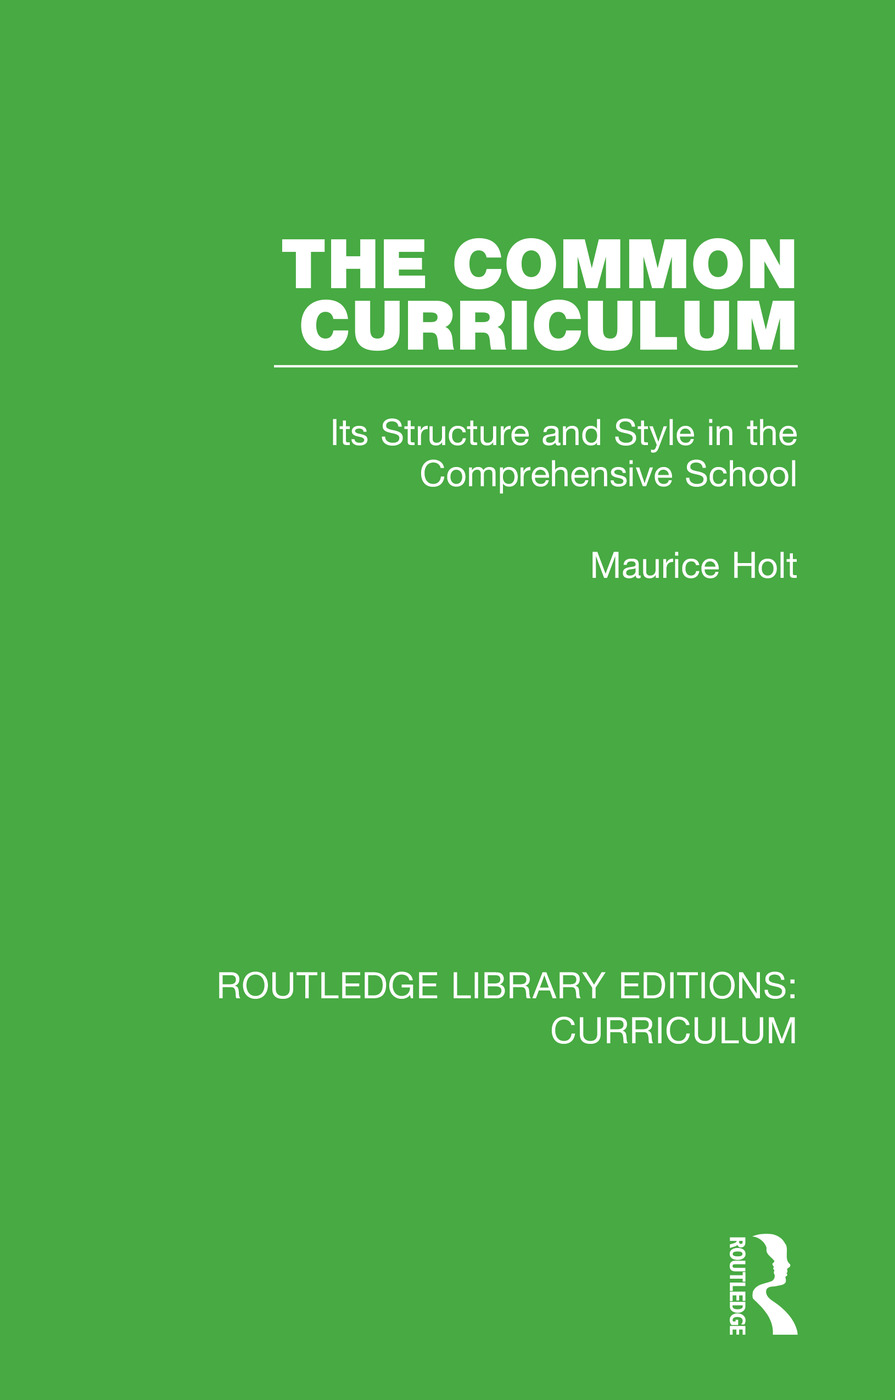 The Common Curriculum